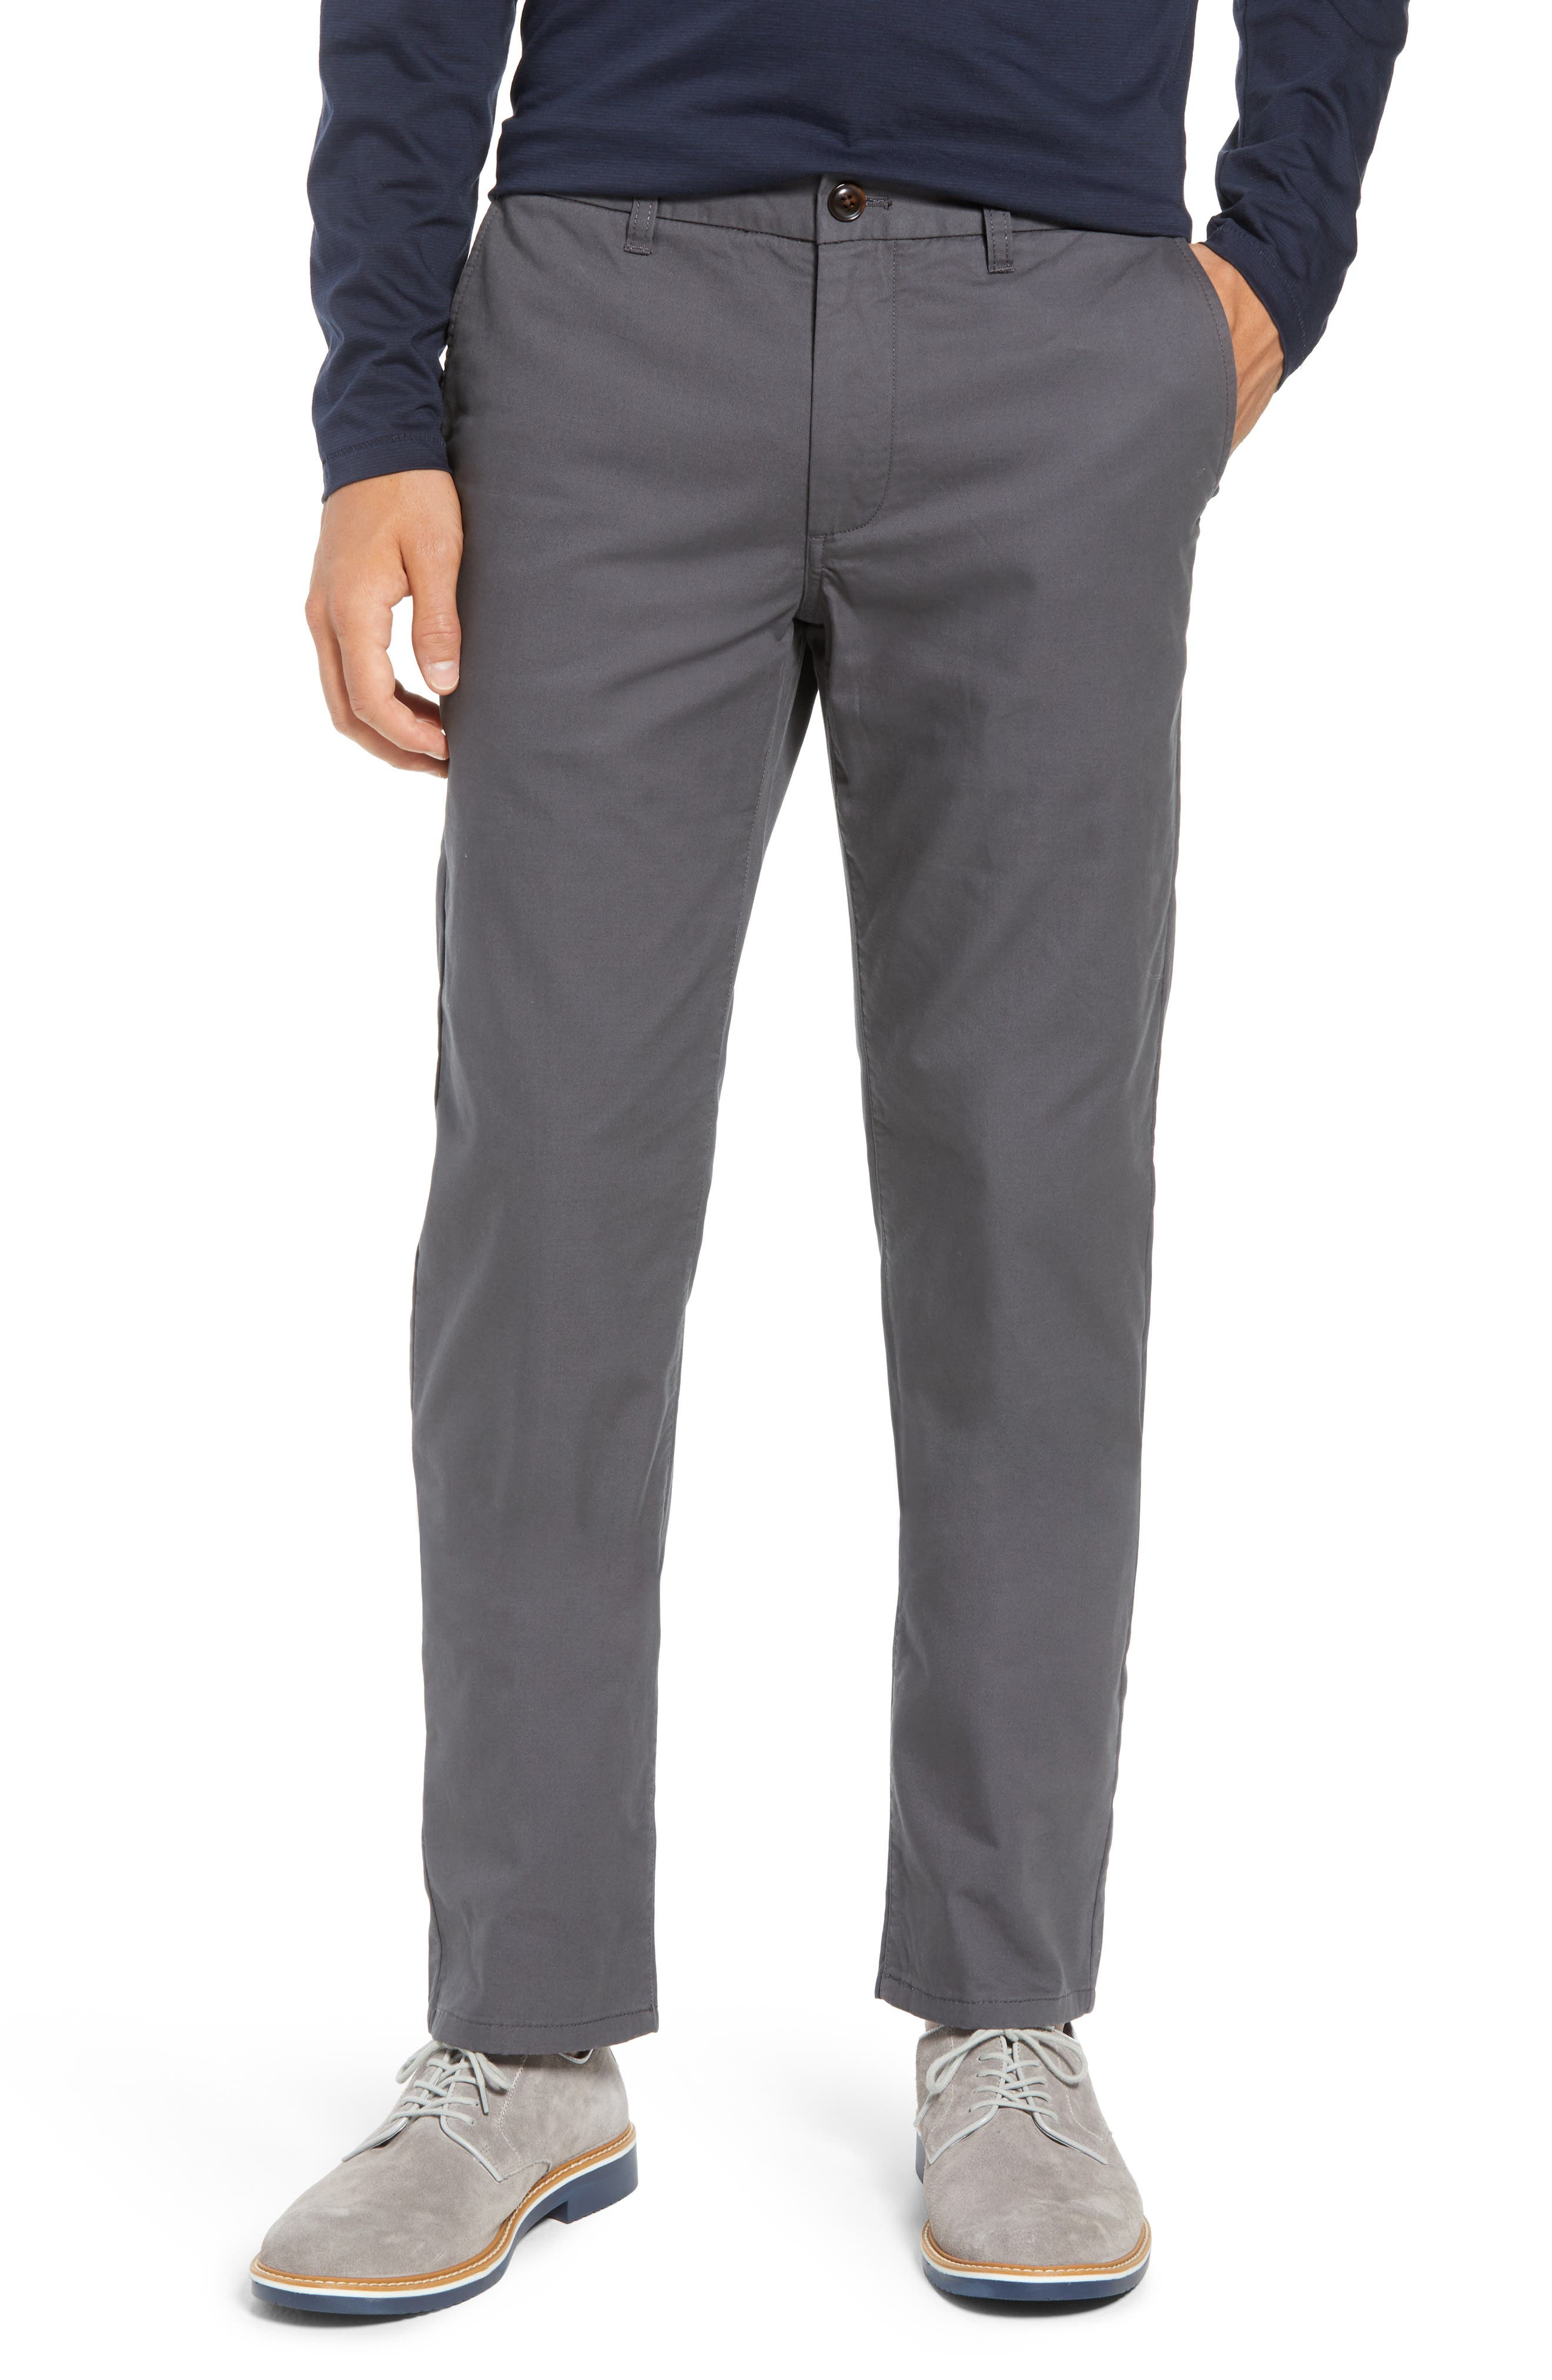 BONOBOS,                             Slim Fit Flannel Lined Chinos,                             Main thumbnail 1, color,                             020